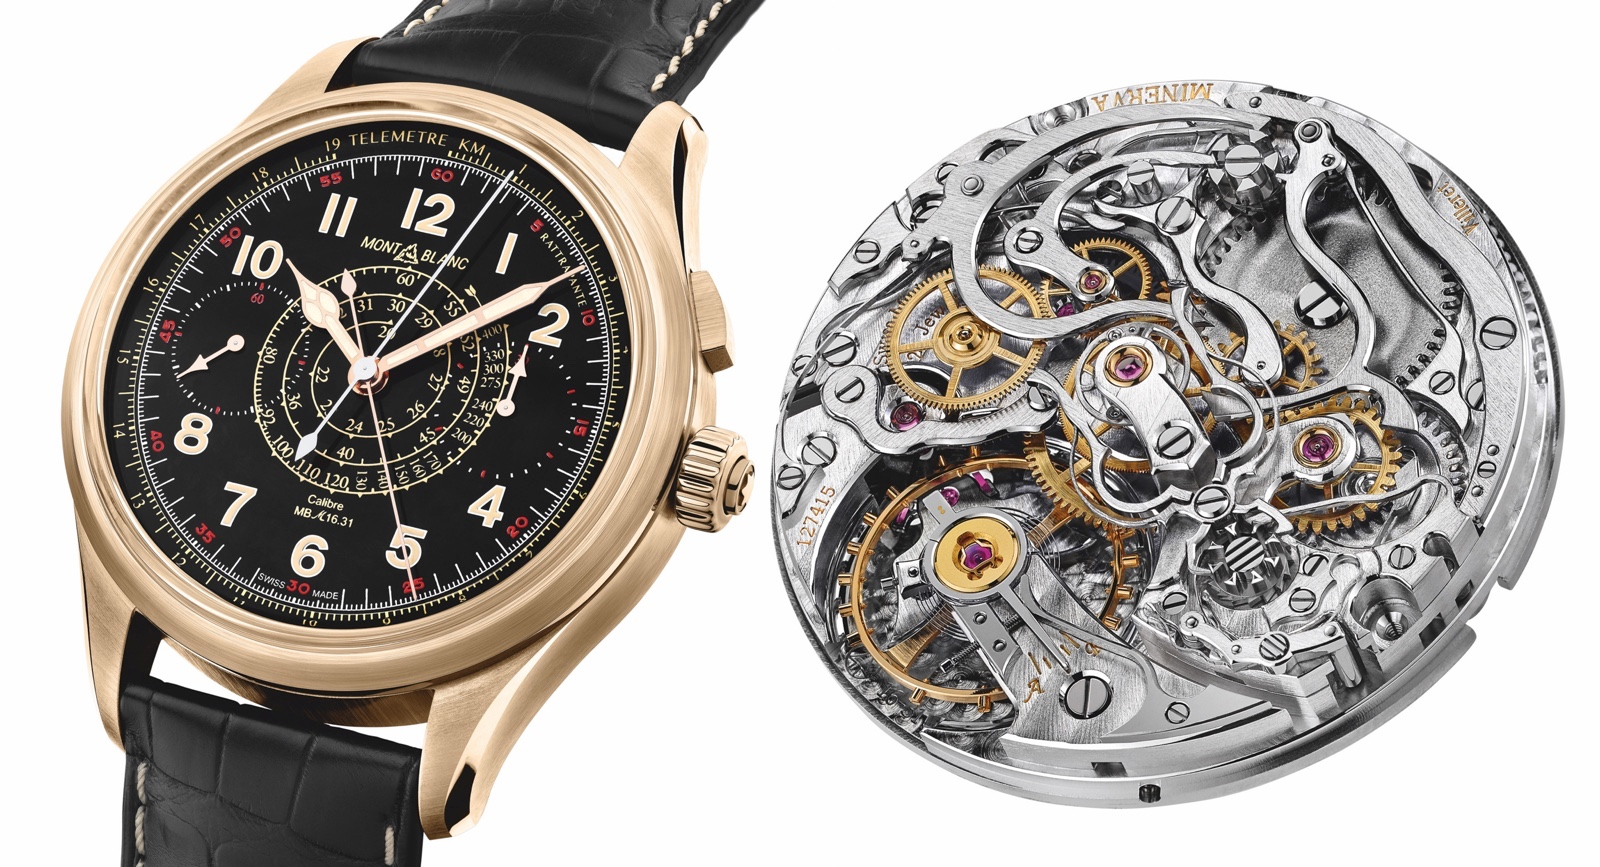 Montblanc 1858 Split Seconds Chronograph SIHH 2019 Modelos